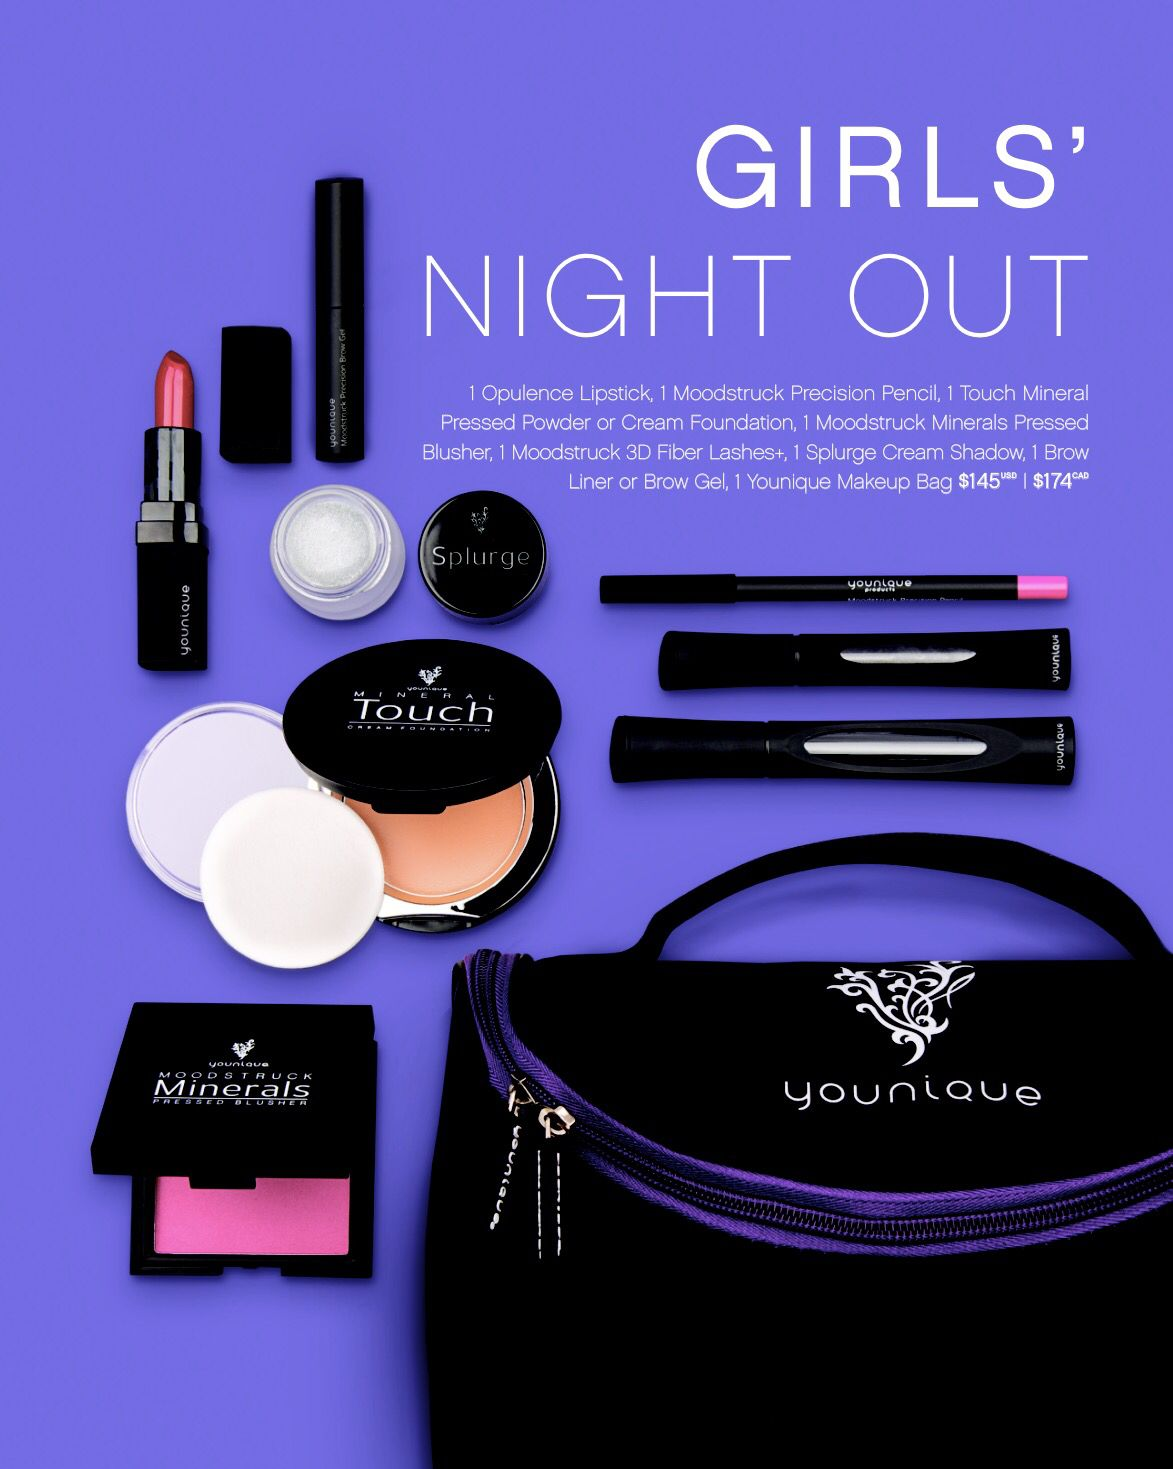 The Girls Night Out Bundle